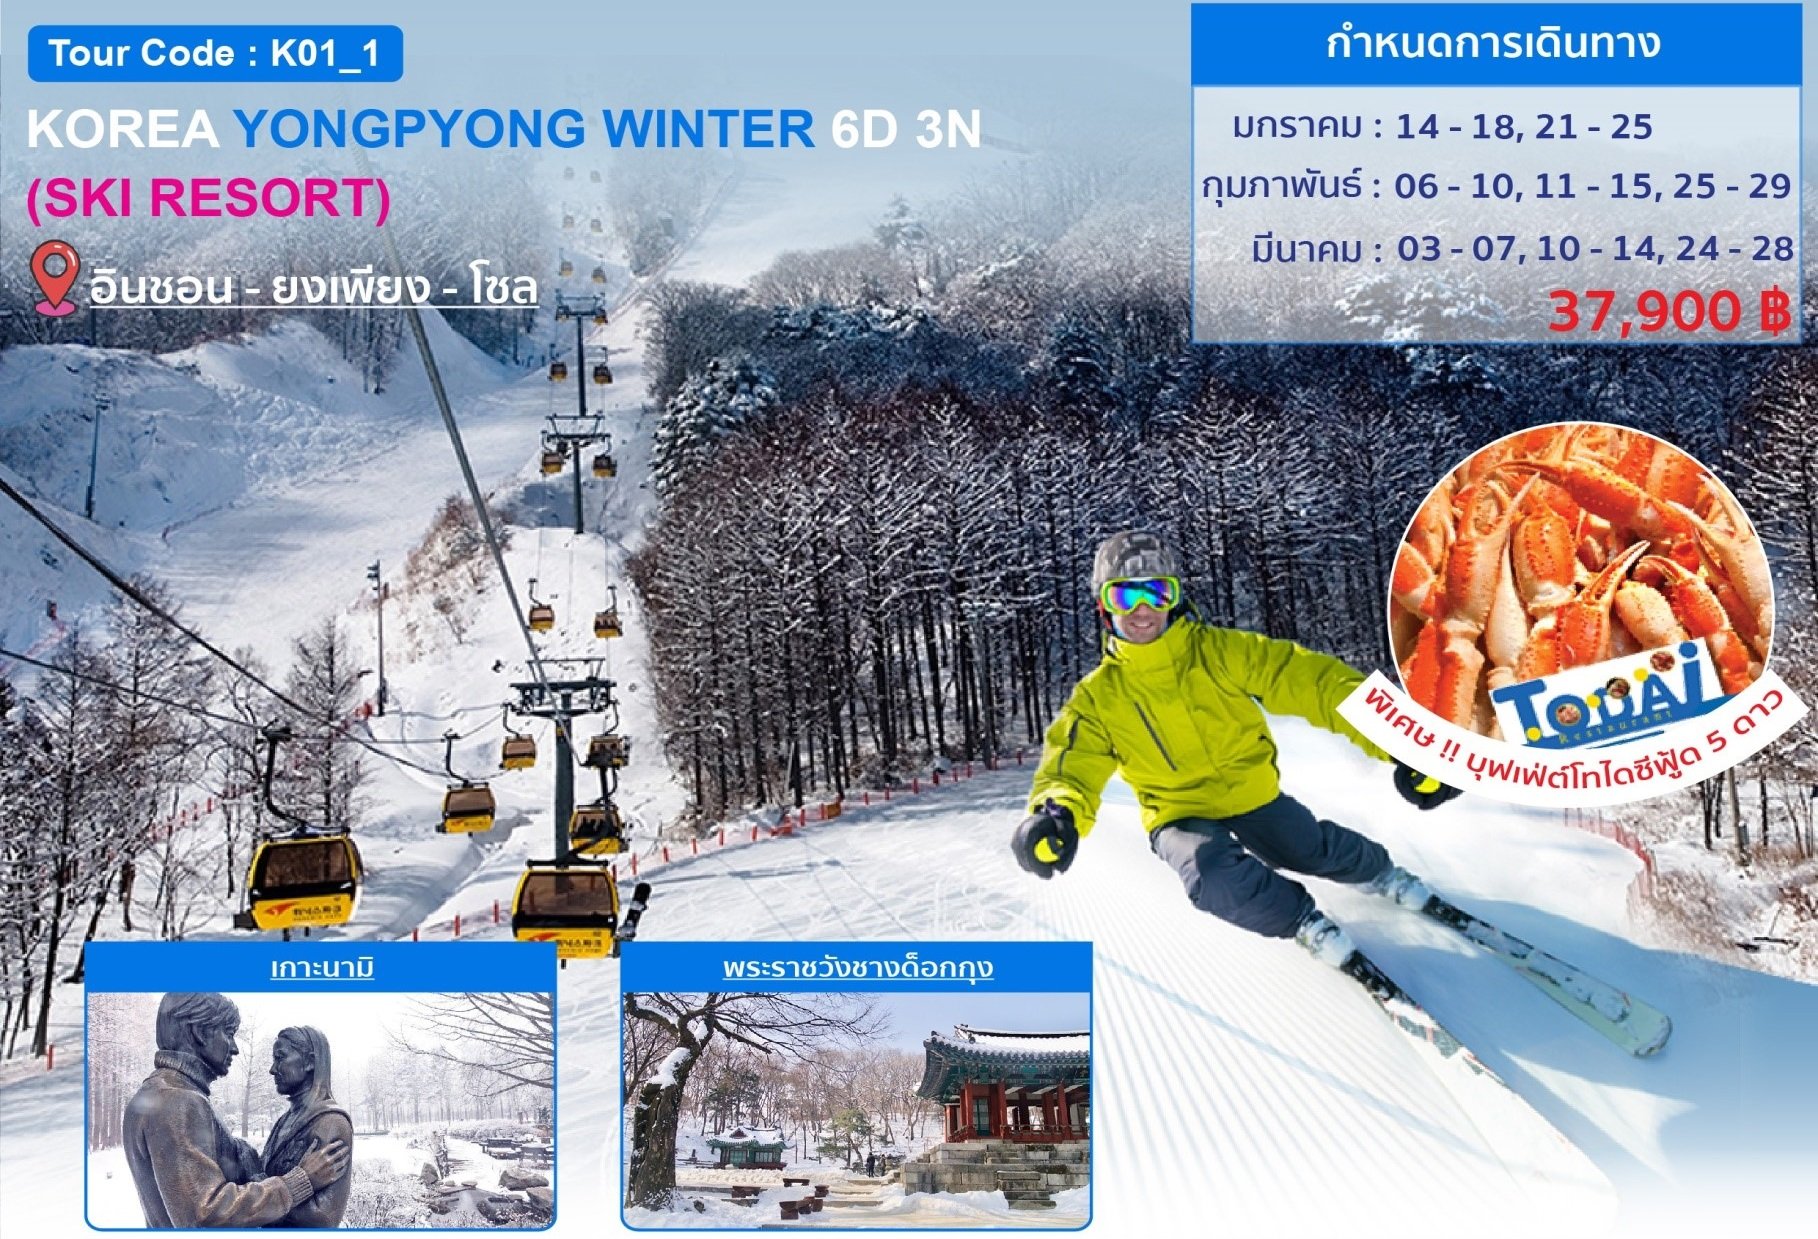 ทัวร์เกาหลี-KOREA-YONGPYONG-WINTER-SKI-RESORT-6D-3N-(TG)-(JAN-MAR20)-(K01_1)